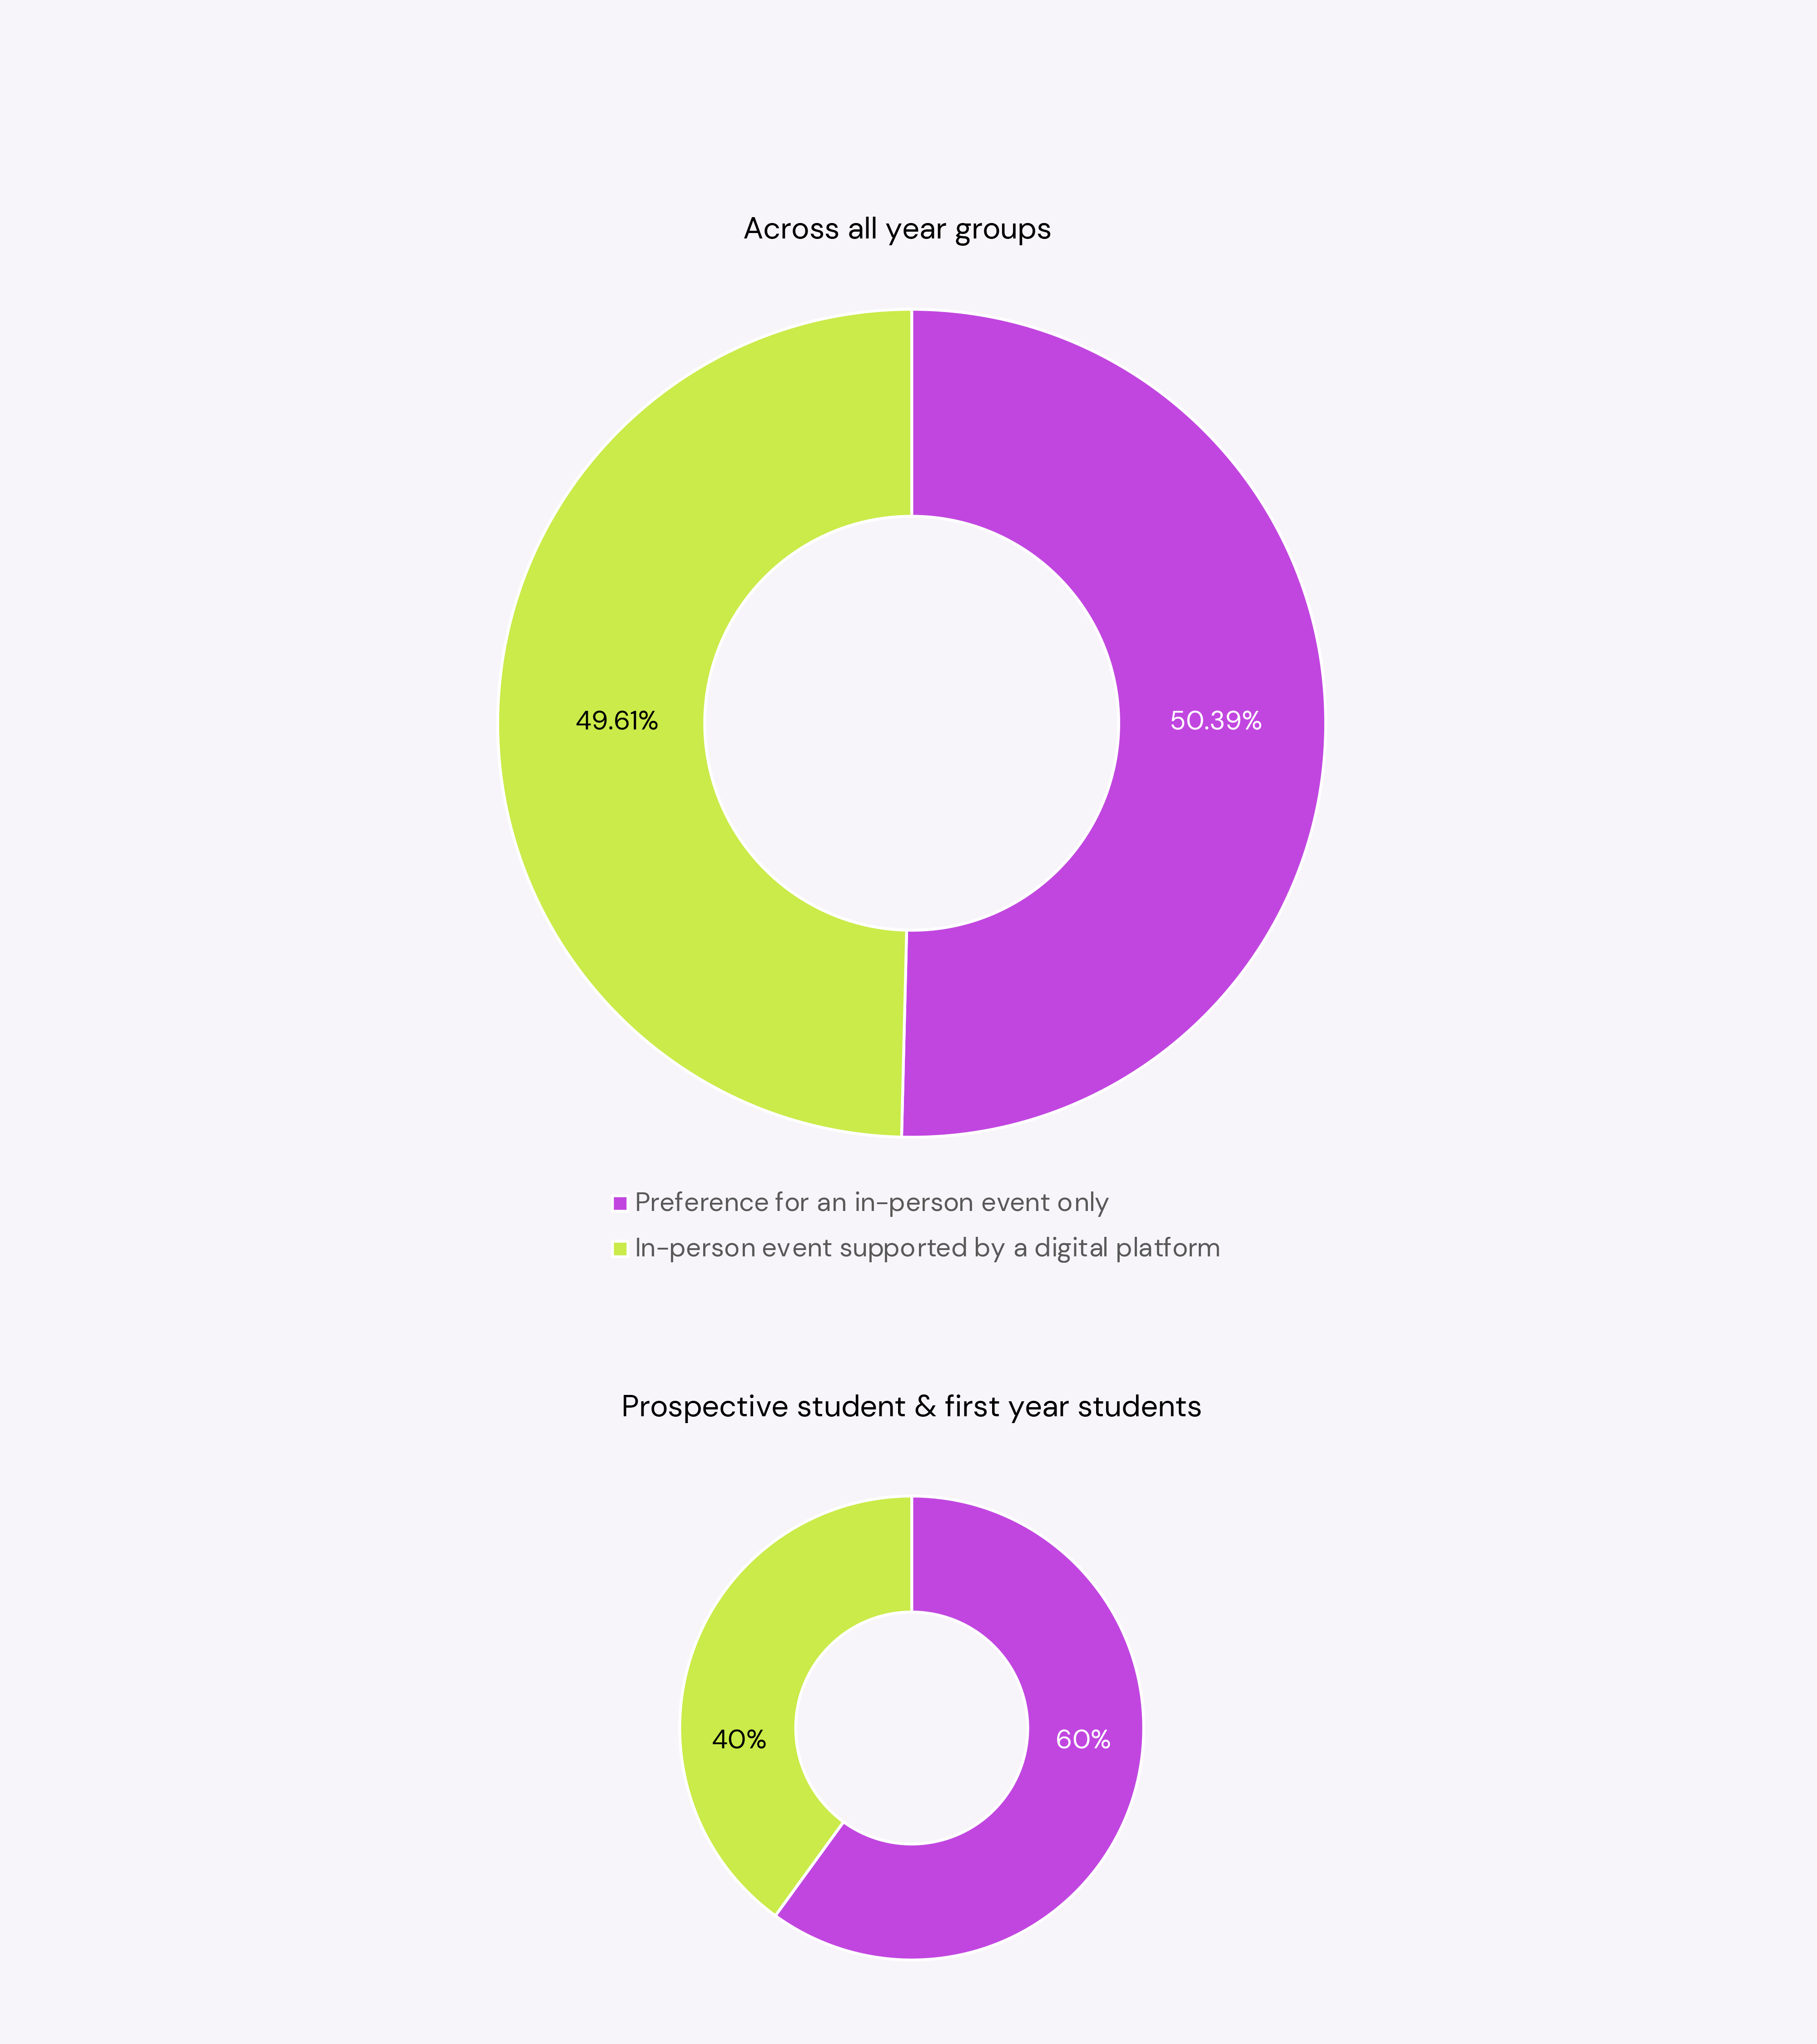 More than 50%. of students want a digital platform alongside in-person events